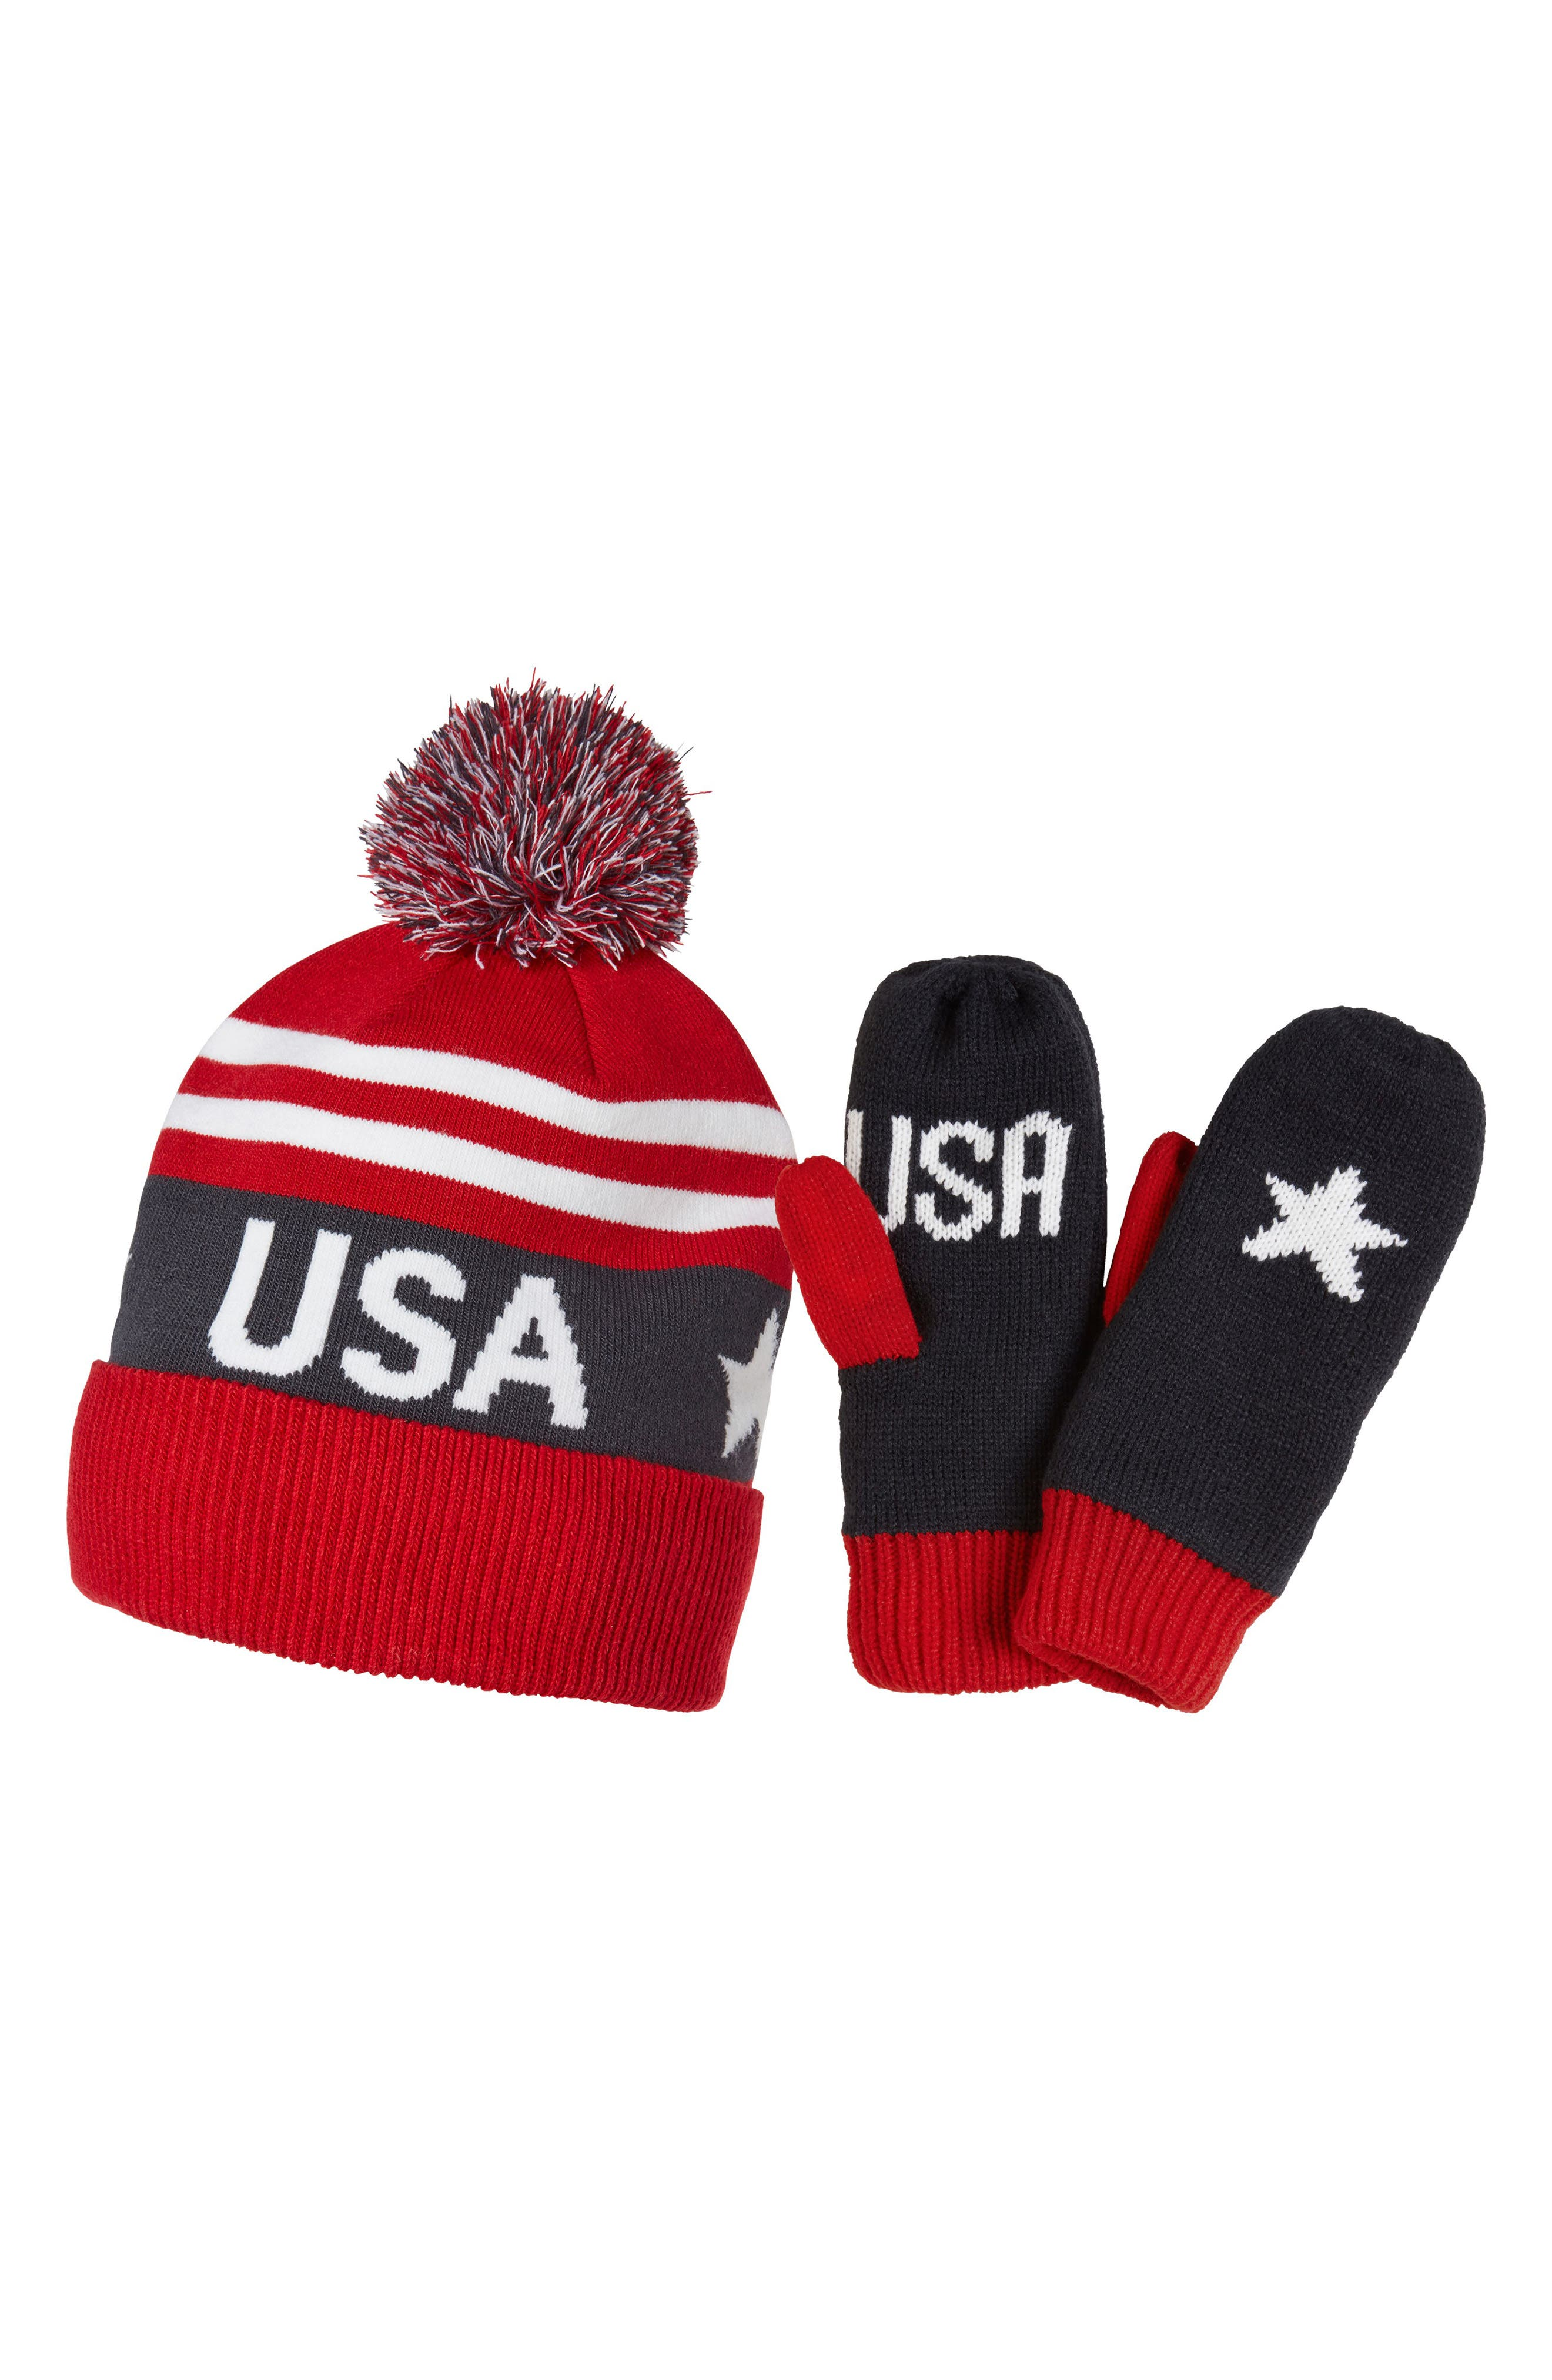 Helly Hansen Going For Gold Knit Cap & Mittens Gift Set